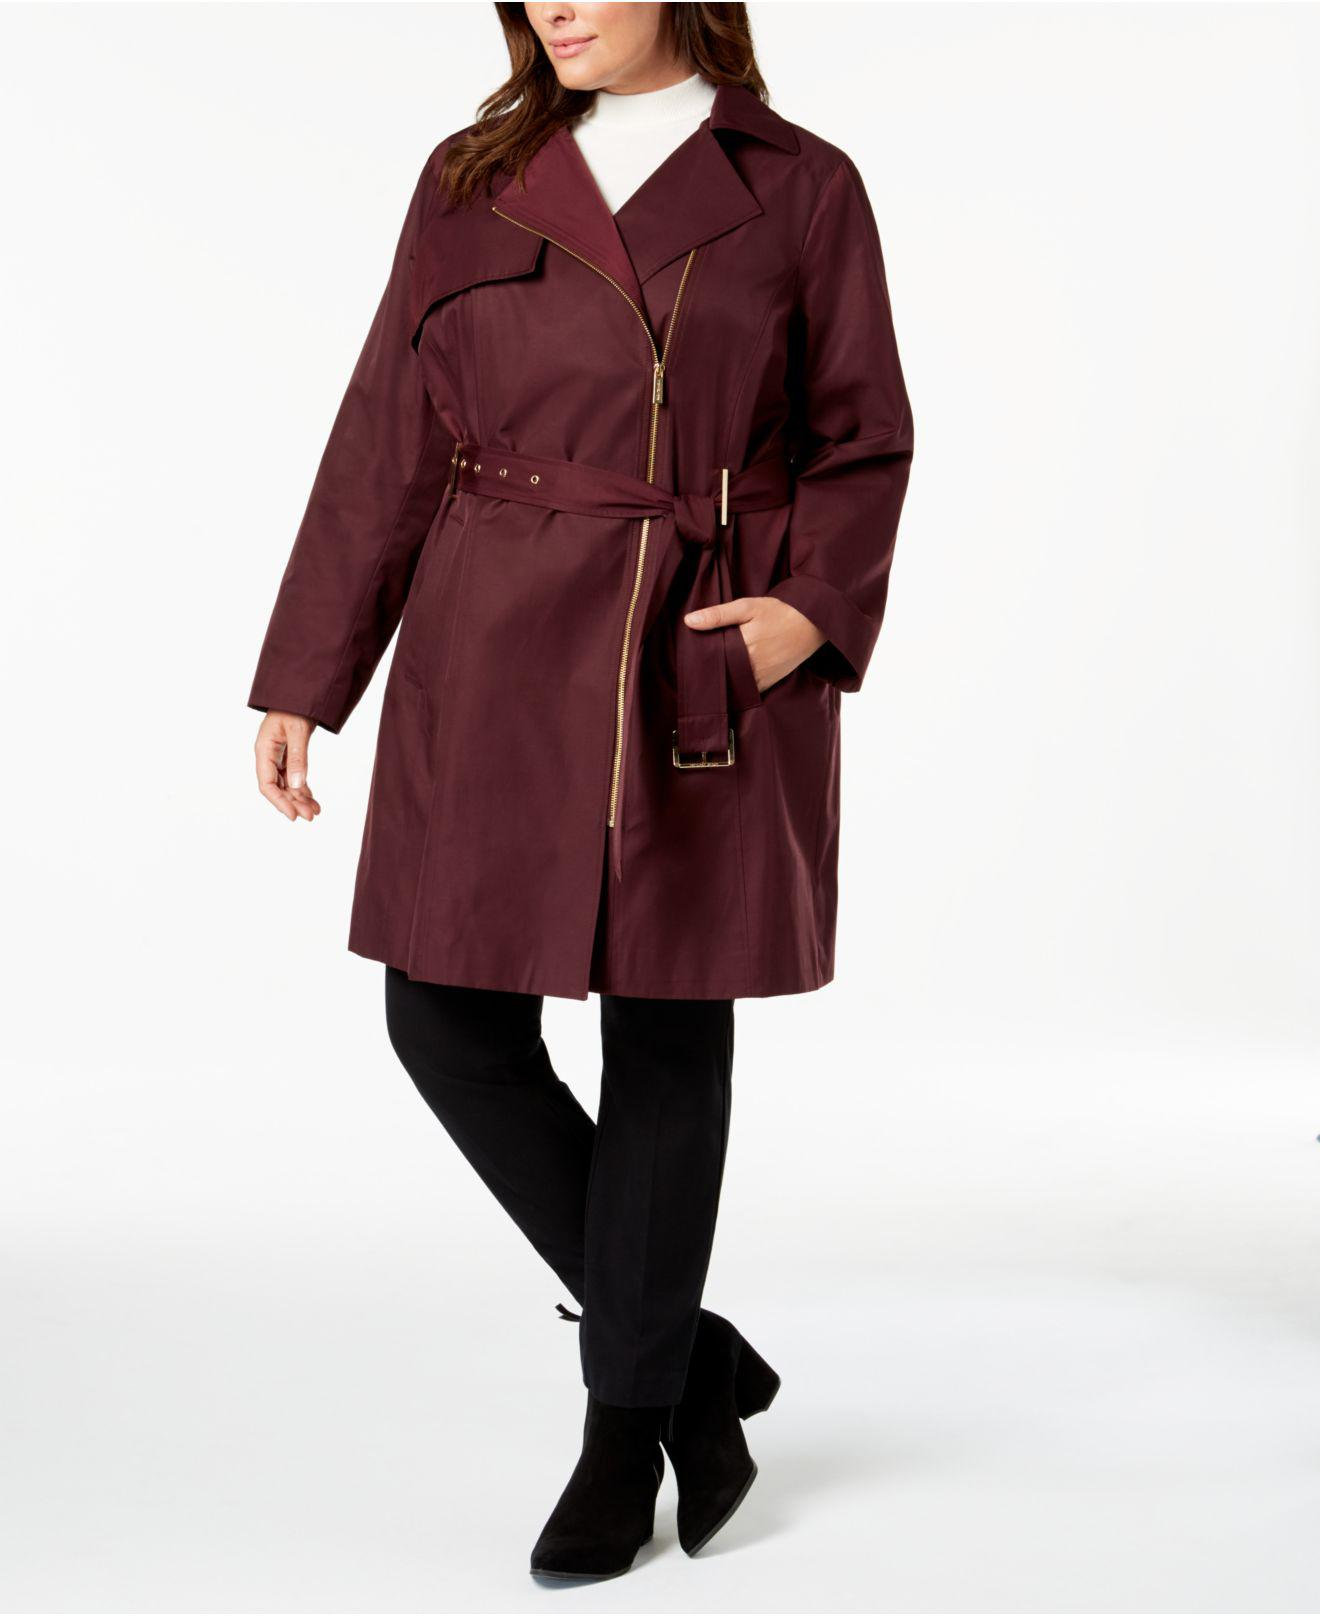 7056fc89dca Michael Kors - Red Michael Plus Size Asymmetrical Hooded Trench Coat - Lyst.  View fullscreen